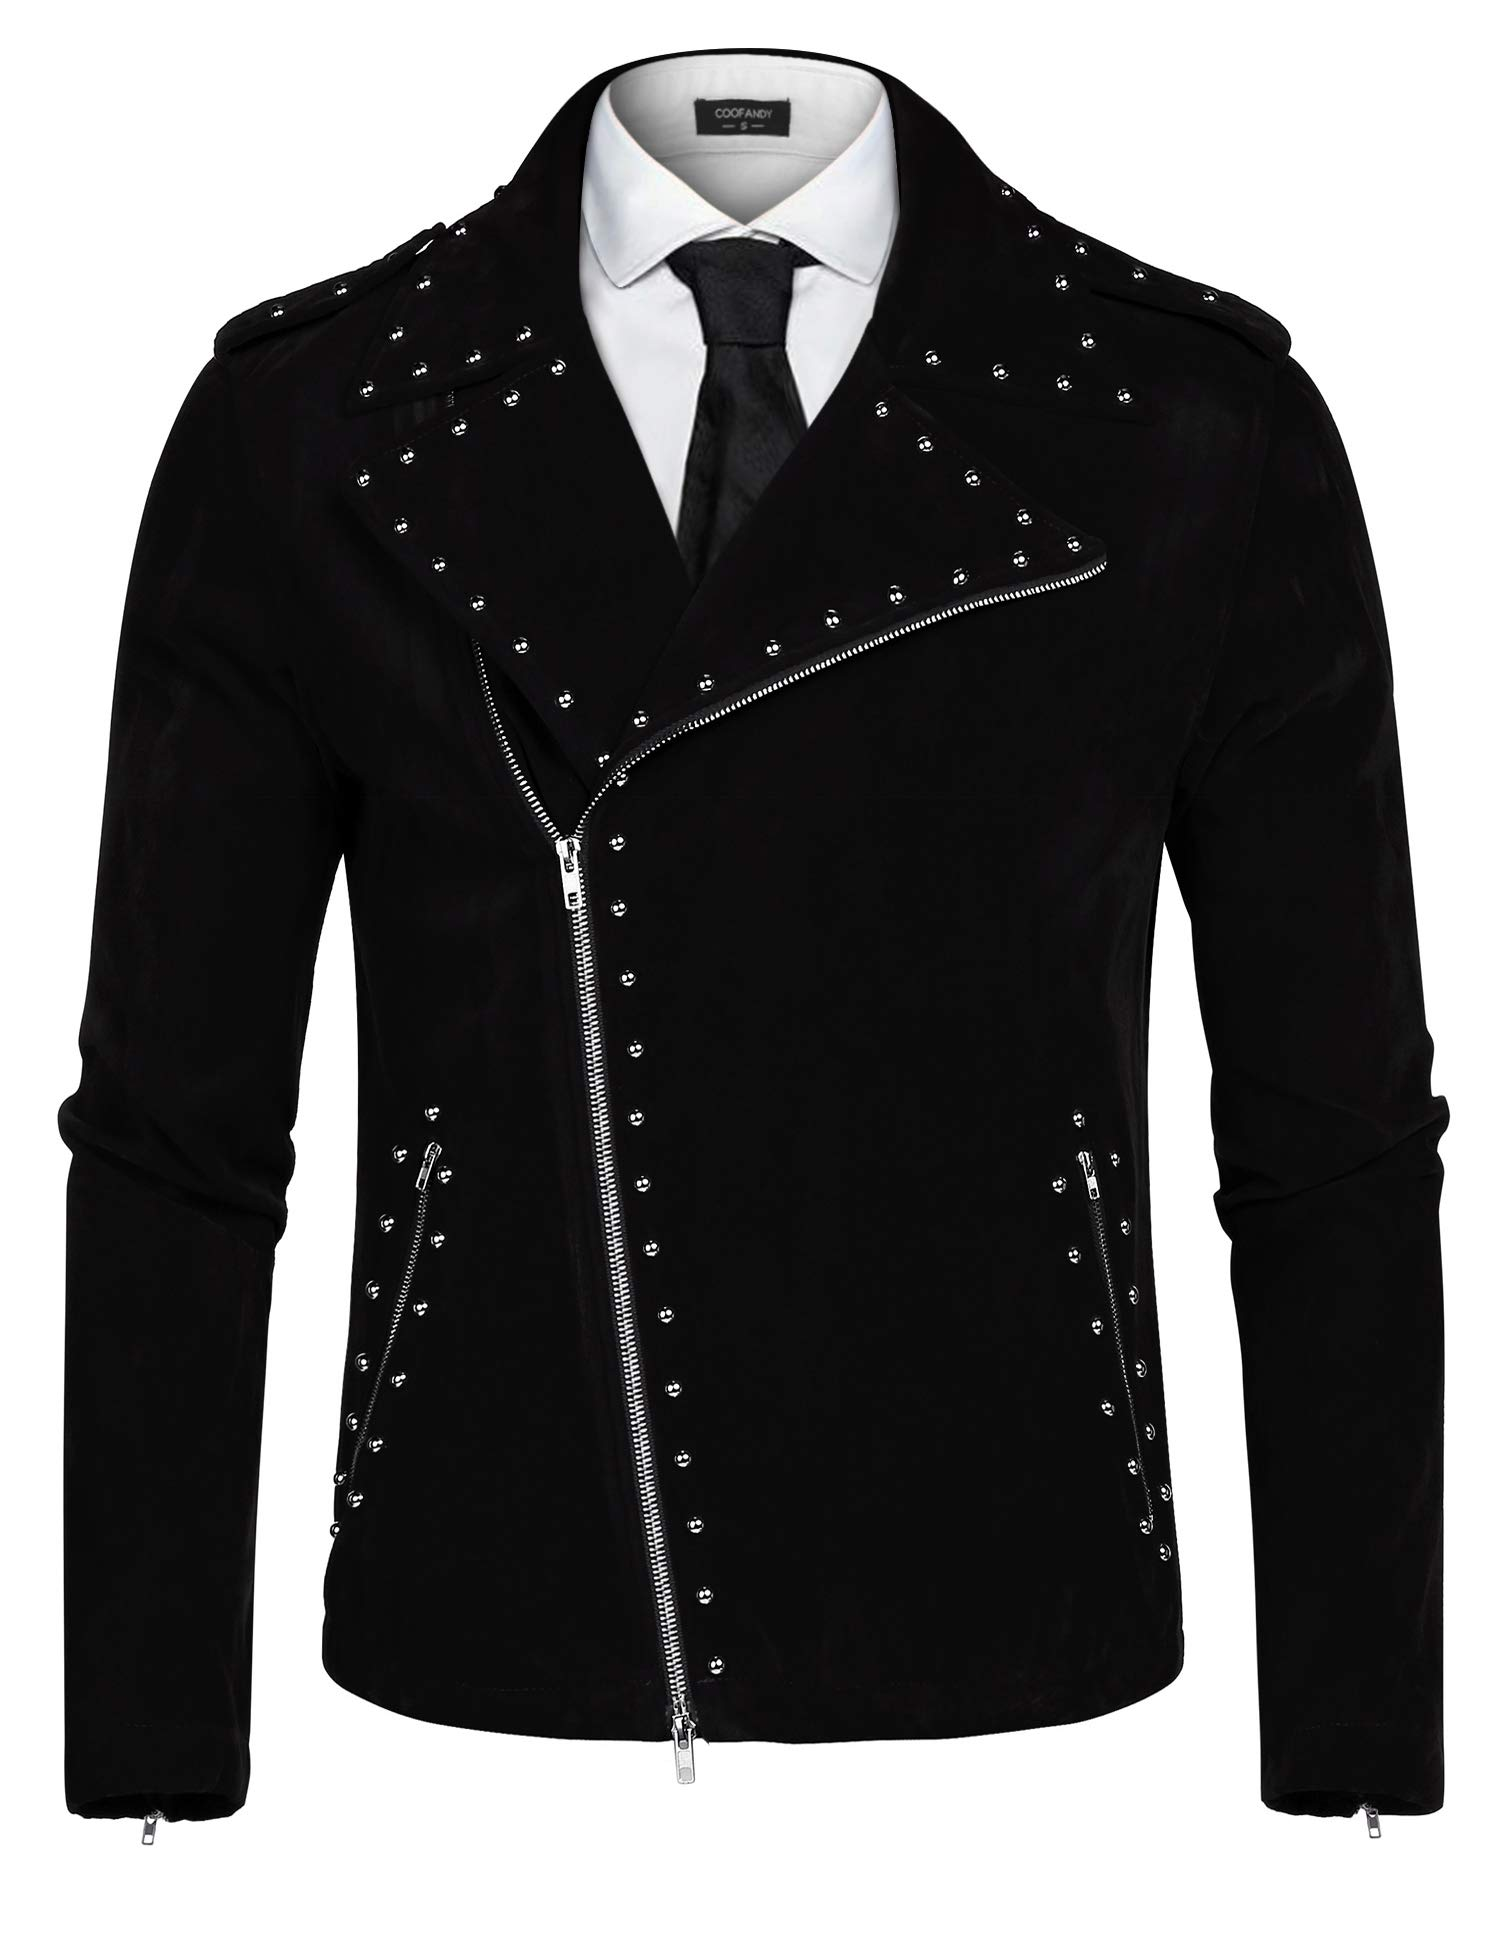 COOFANDY Men's Velvet Rivet Design Punk Rock Motorcycle Biker Jacket Zipper Coat(Black,XXL)